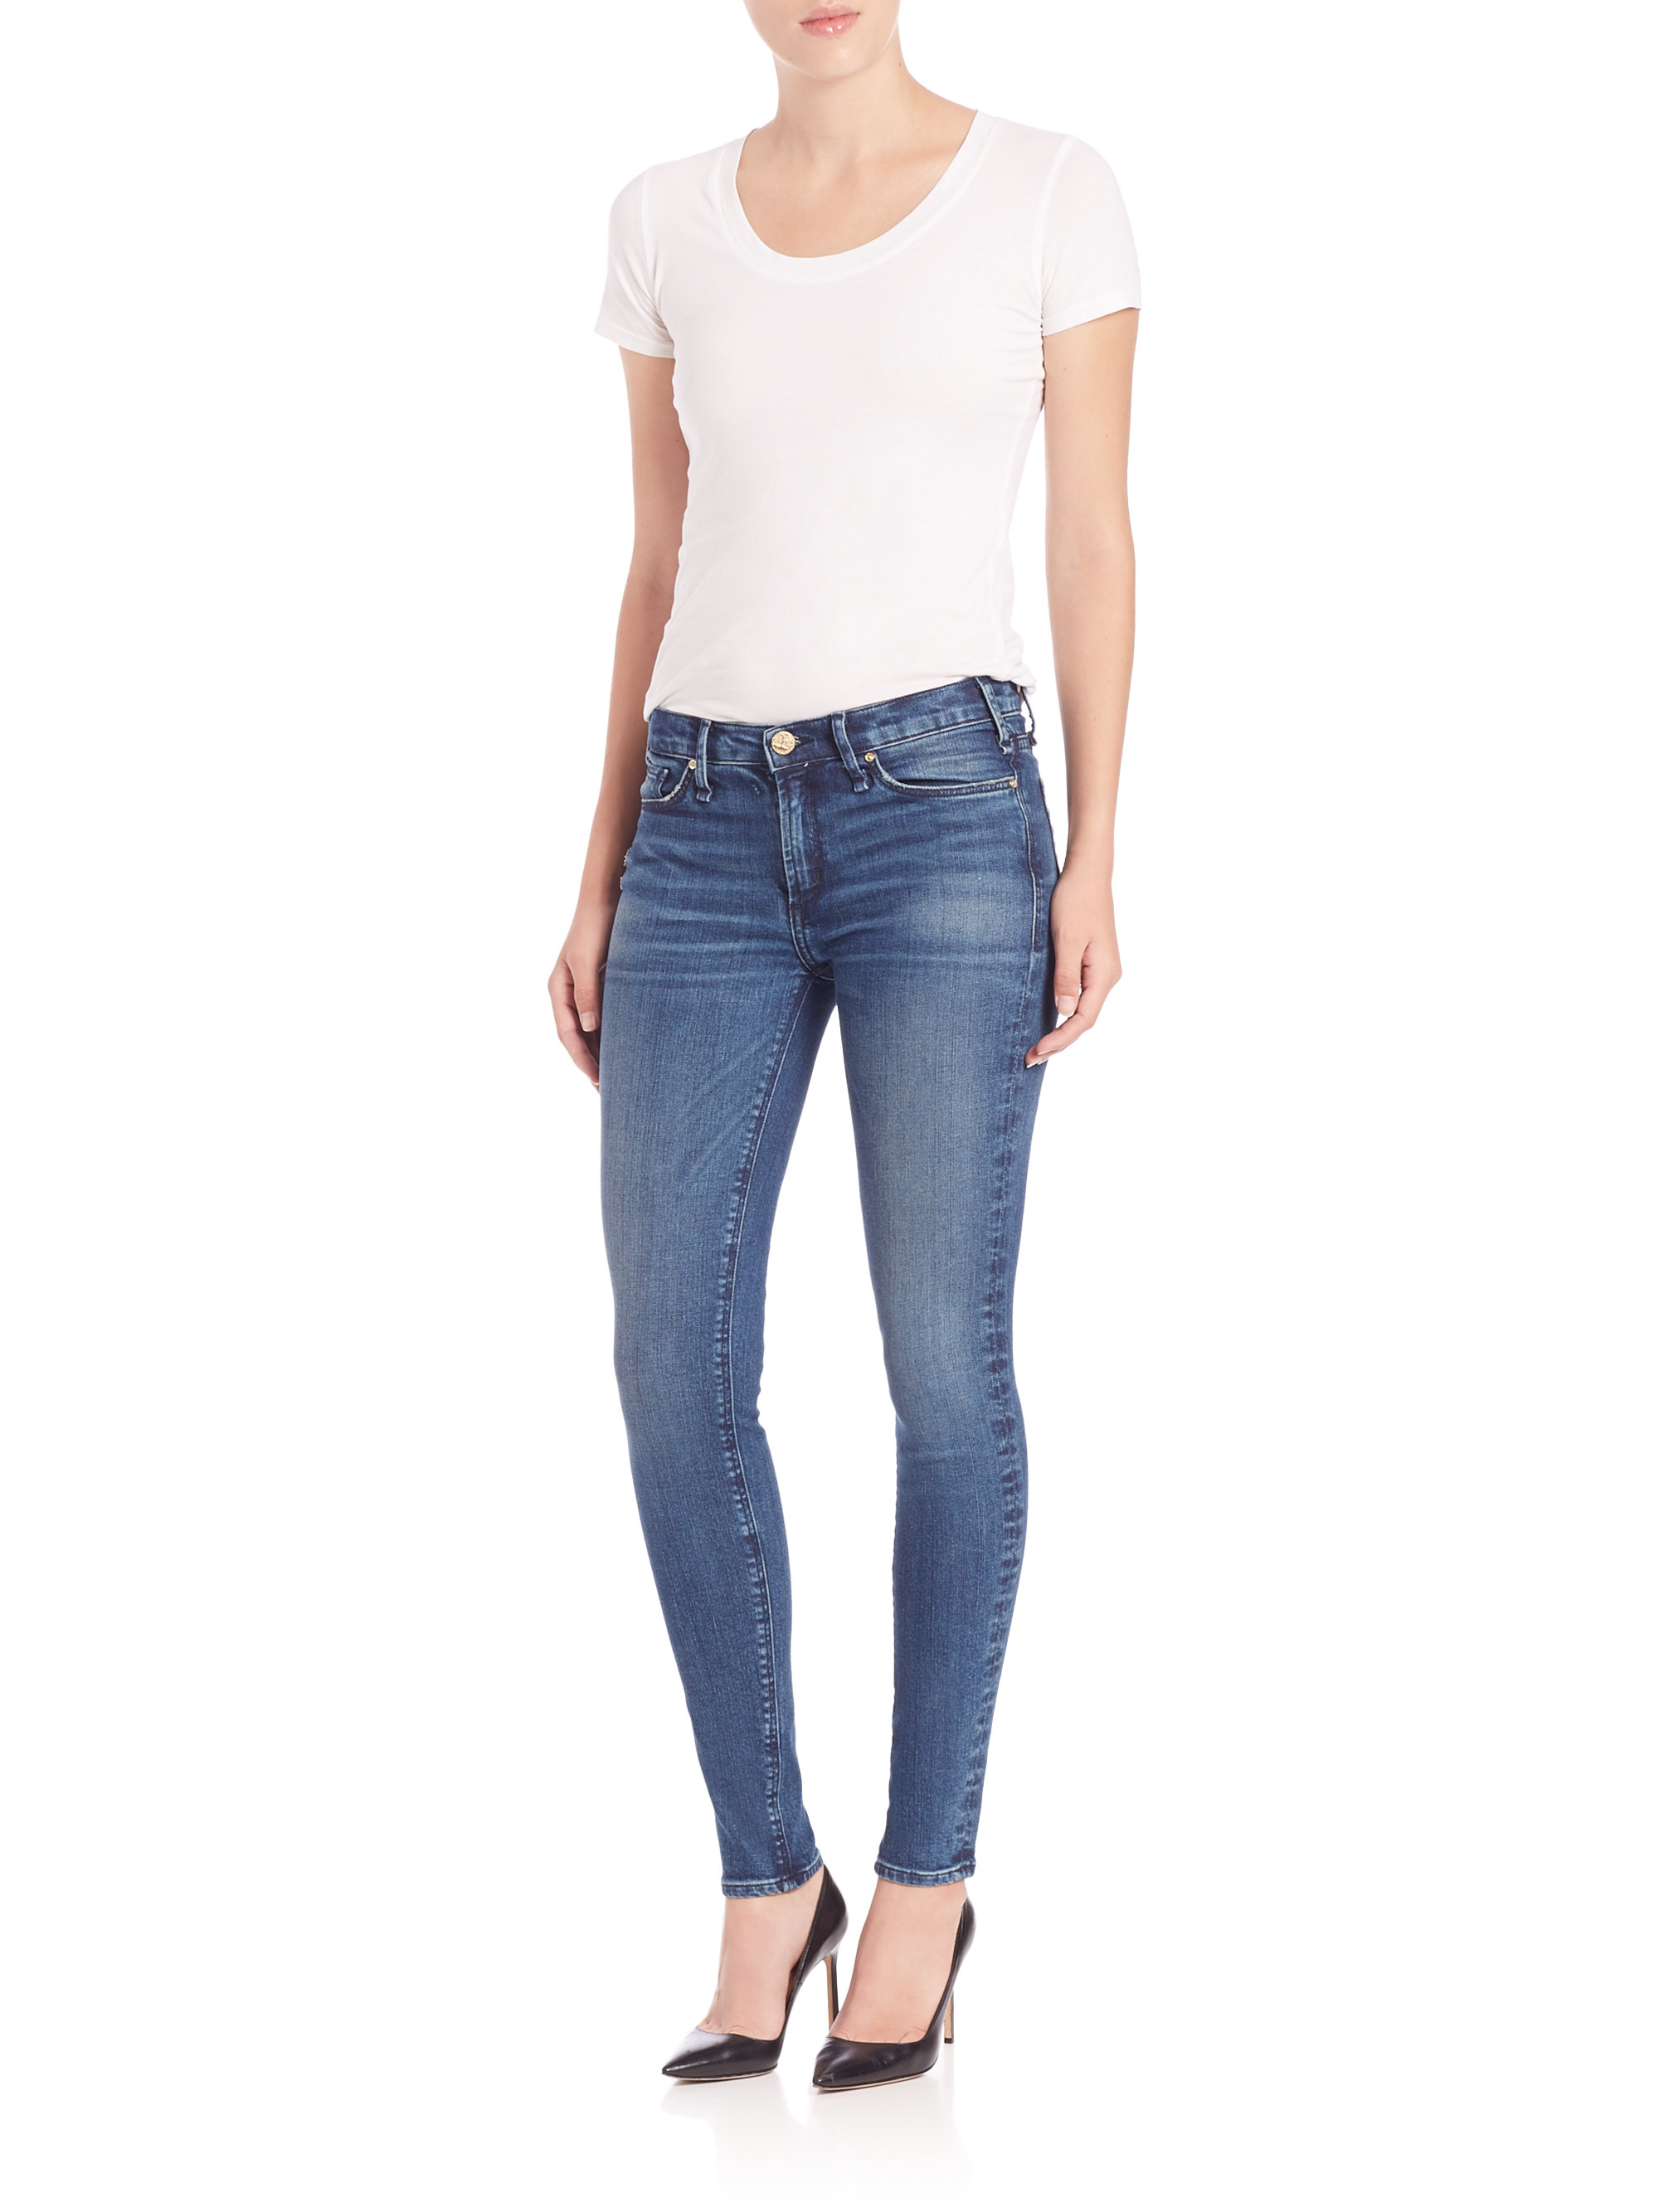 Mcguire Newton Faded Skinny Jeans in Blue | Lyst